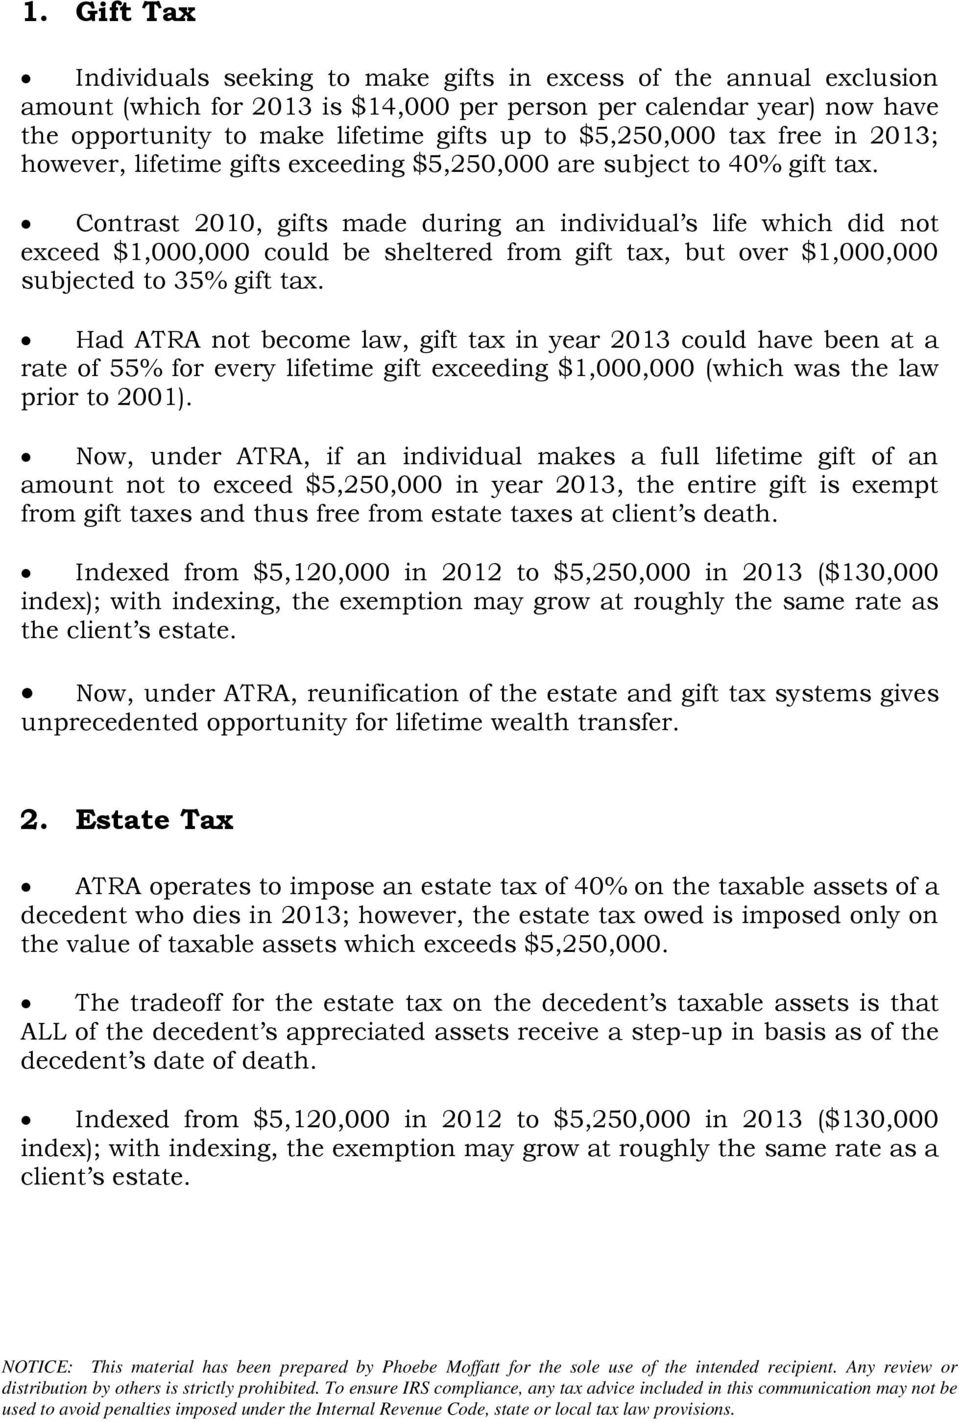 Contrast 2010, gifts made during an individual s life which did not exceed $1,000,000 could be sheltered from gift tax, but over $1,000,000 subjected to 35% gift tax.